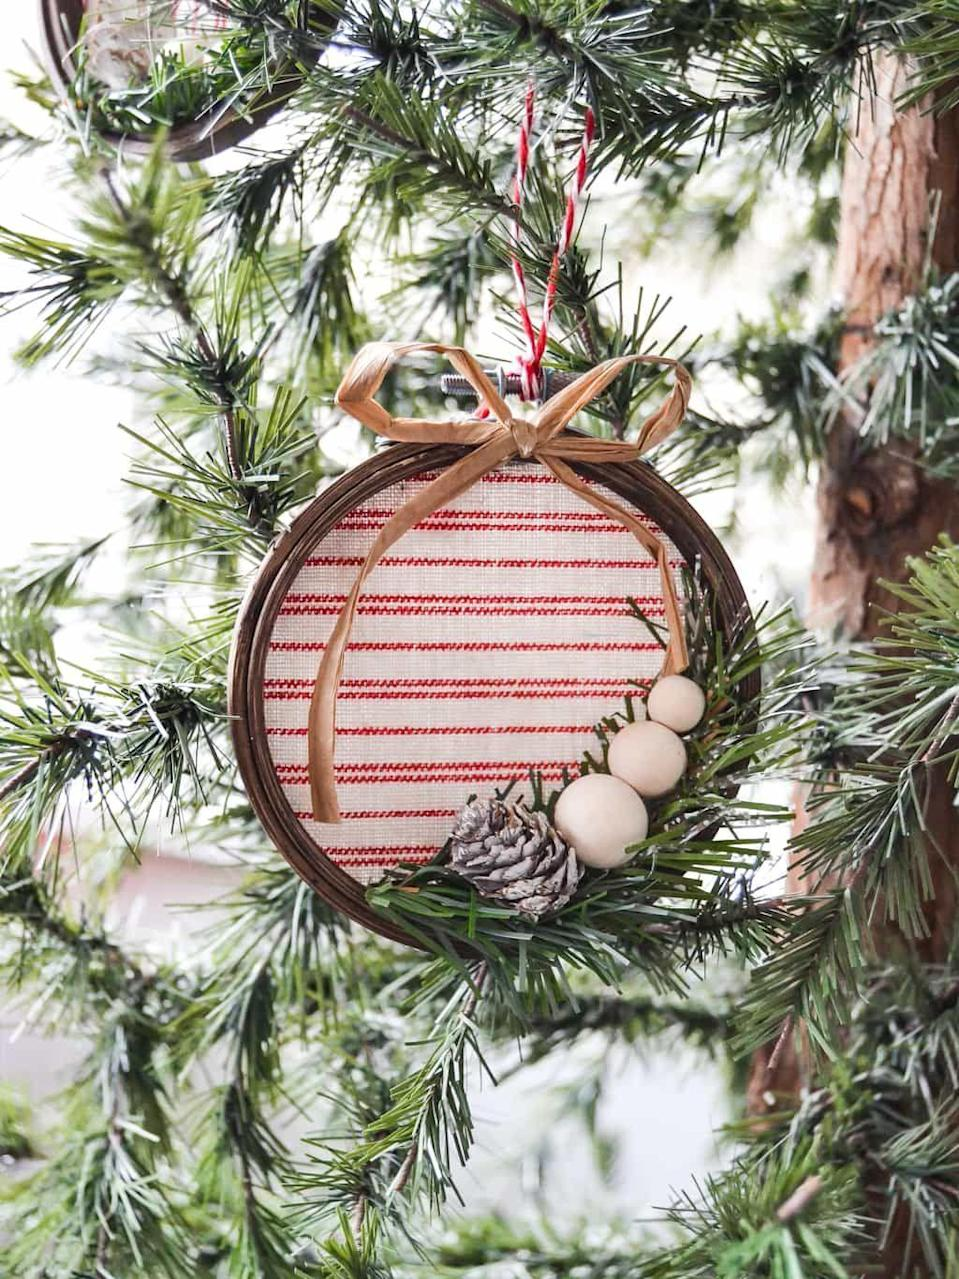 "<p>These embroidery hoop Christmas ornaments will look perfect on your tree, but they're so beautiful that we recommend making a few extra and hanging 'em on doorknobs and windows.</p><p><strong>Get the tutorial at <a href=""https://mycreativedays.porch.com/diy-embroidery-hoop-christmas-ornament/"" rel=""nofollow noopener"" target=""_blank"" data-ylk=""slk:My Creative Days"" class=""link rapid-noclick-resp"">My Creative Days</a>.</strong></p><p><a class=""link rapid-noclick-resp"" href=""https://www.amazon.com/Wooden-Embroidery-Wholesale-Pieces-Darice/dp/B01M3MPL8J/?tag=syn-yahoo-20&ascsubtag=%5Bartid%7C10050.g.1070%5Bsrc%7Cyahoo-us"" rel=""nofollow noopener"" target=""_blank"" data-ylk=""slk:SHOP EMBROIDERY HOOPS"">SHOP EMBROIDERY HOOPS</a></p>"